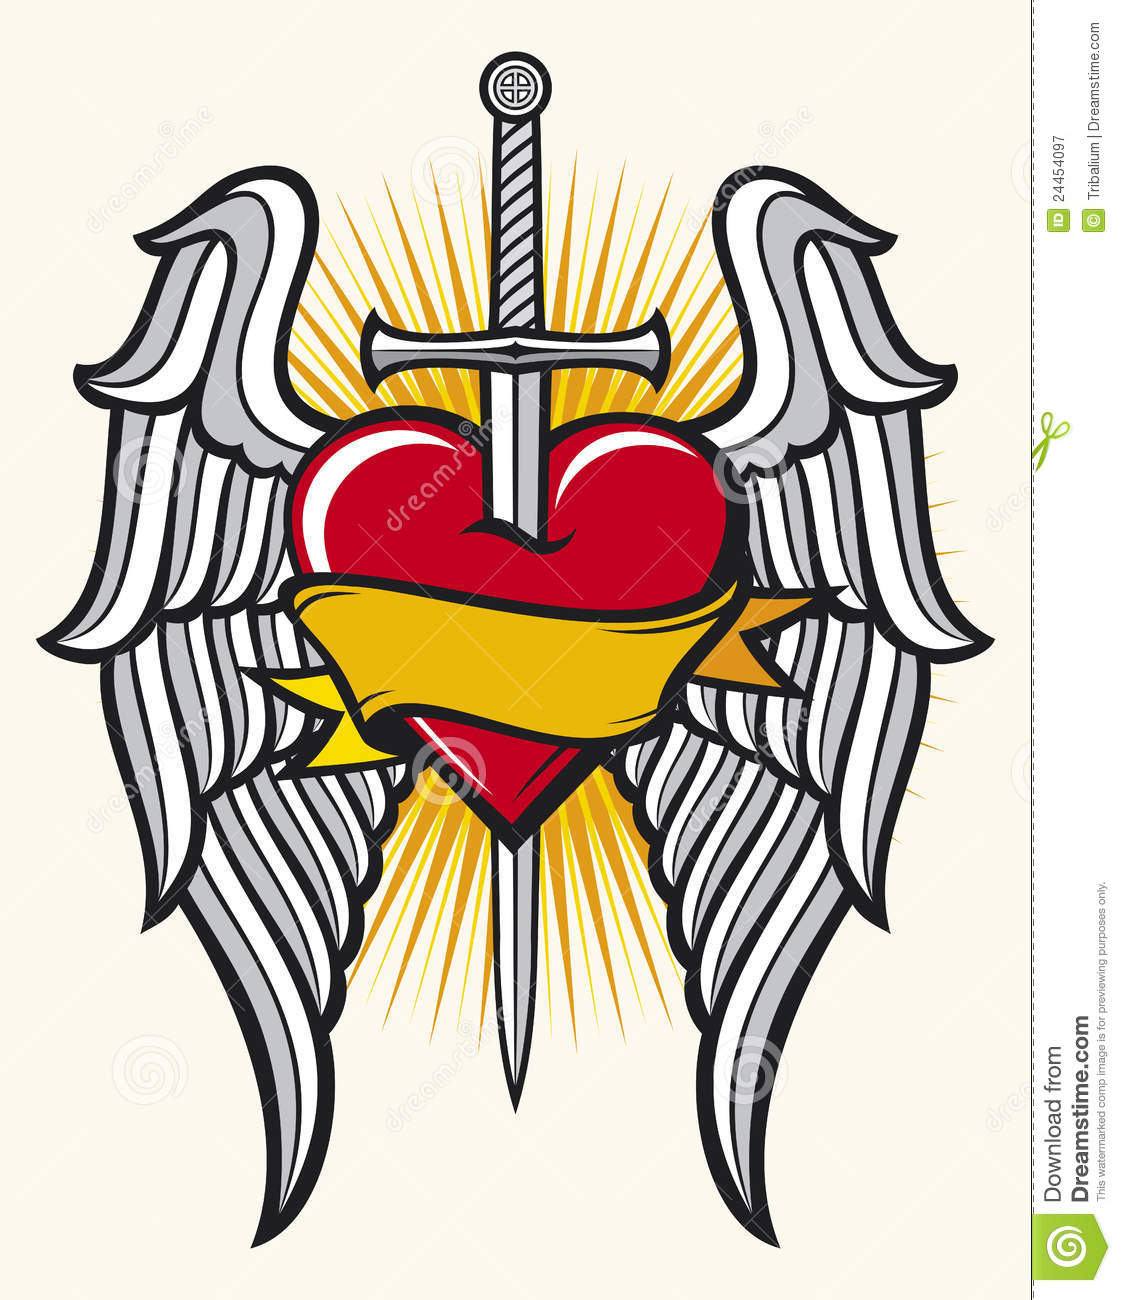 Gallery For gt Heart With Wings And Sword Tattoo